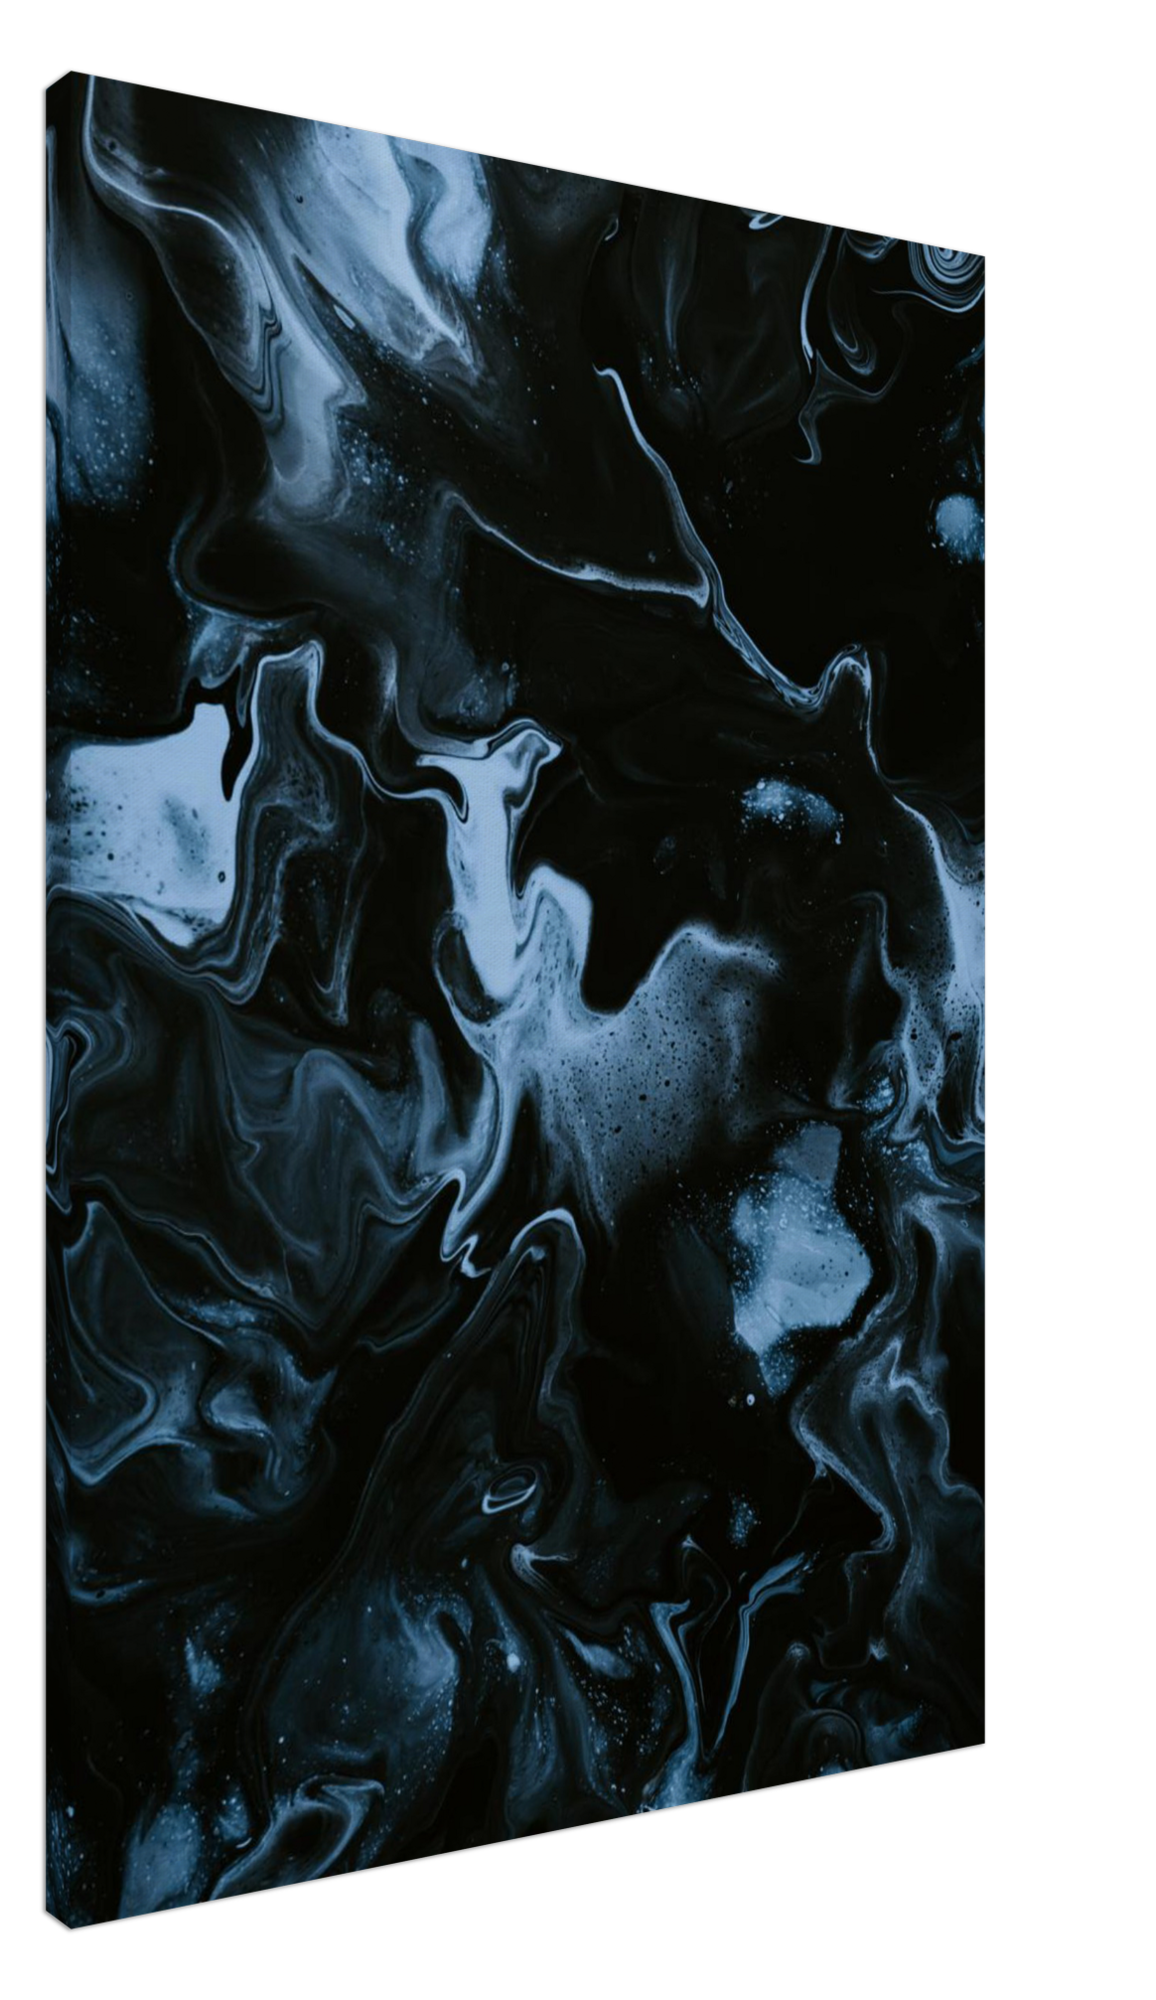 Abstract dark - S:30x45 cm/Stretched Canvas